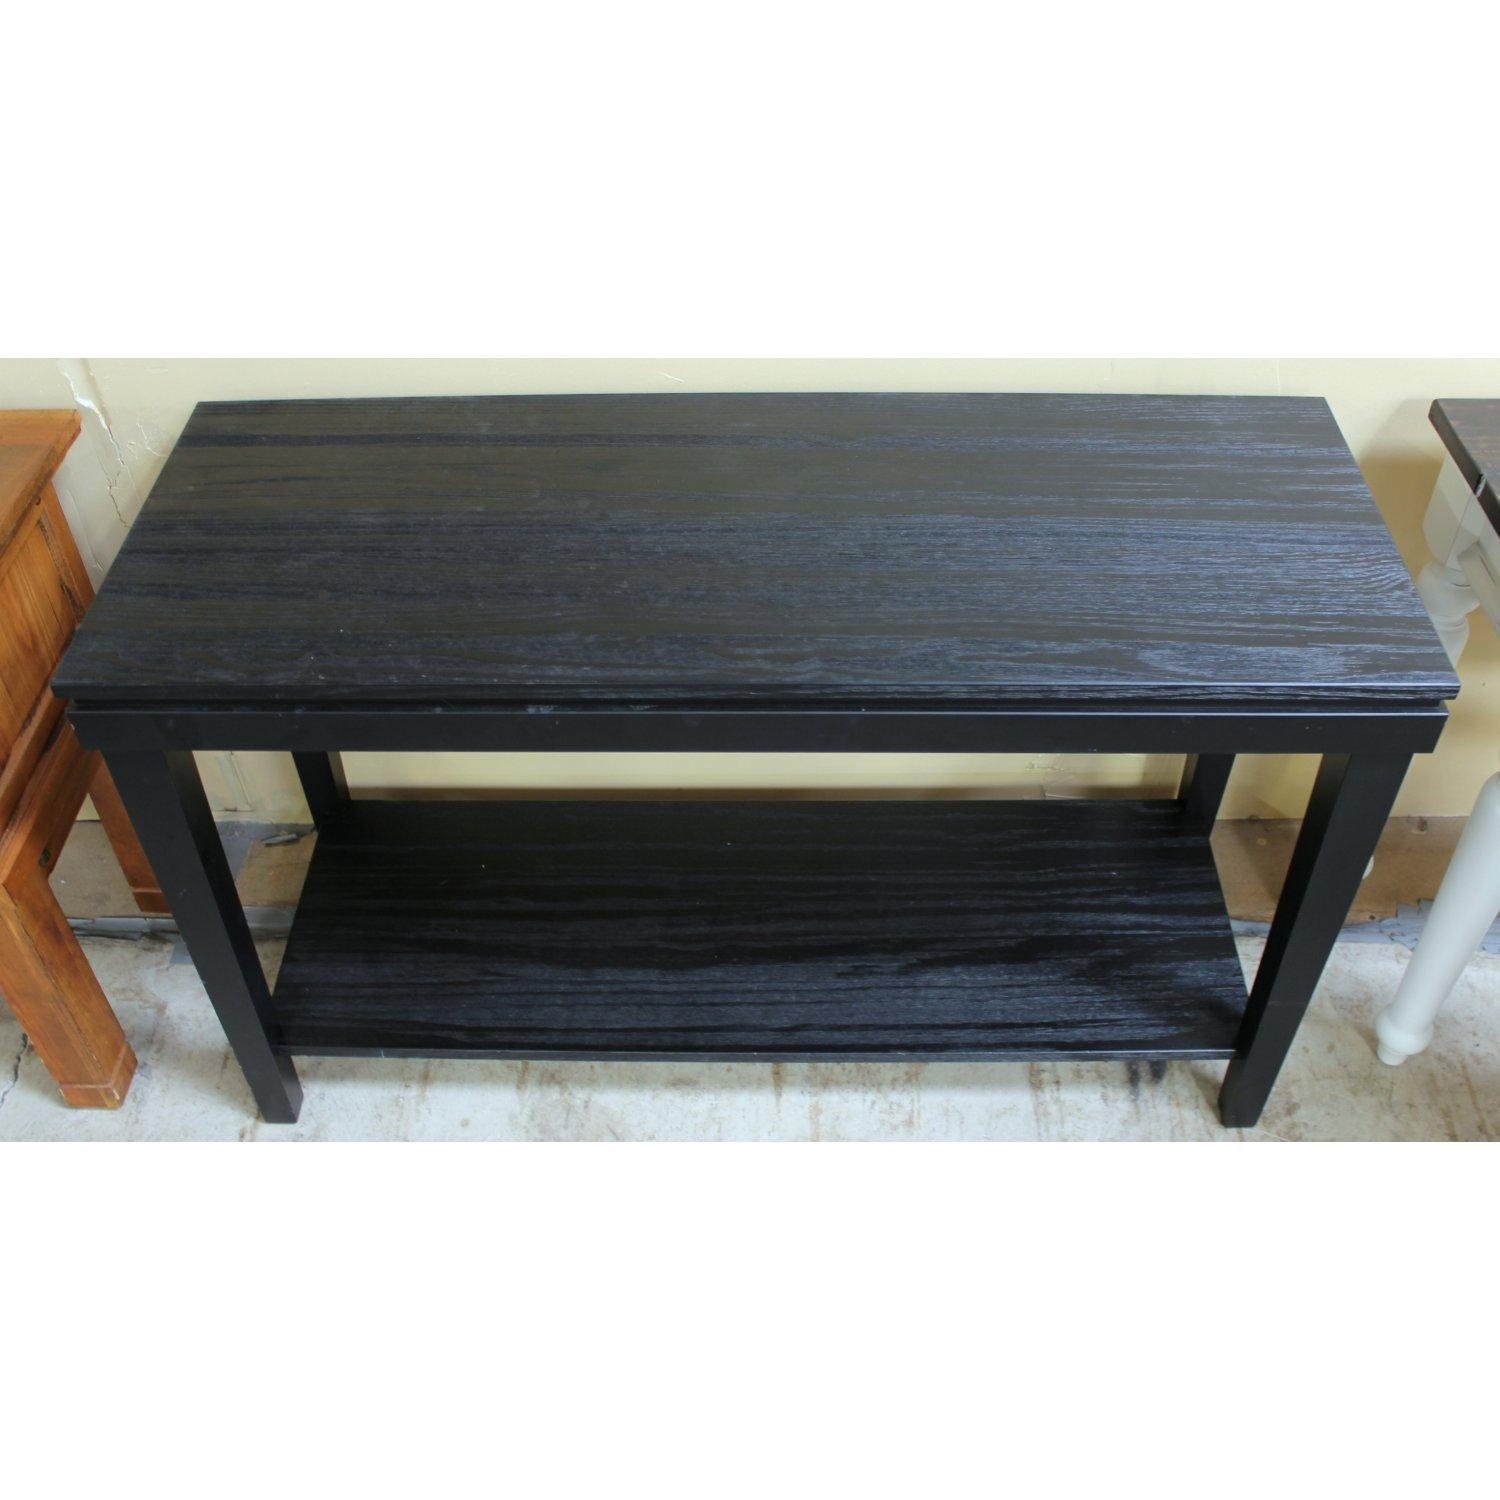 81 Exciting Pier One Sofa Table Home Design Red Side Tables Black regarding Pier 1 Sofa Beds